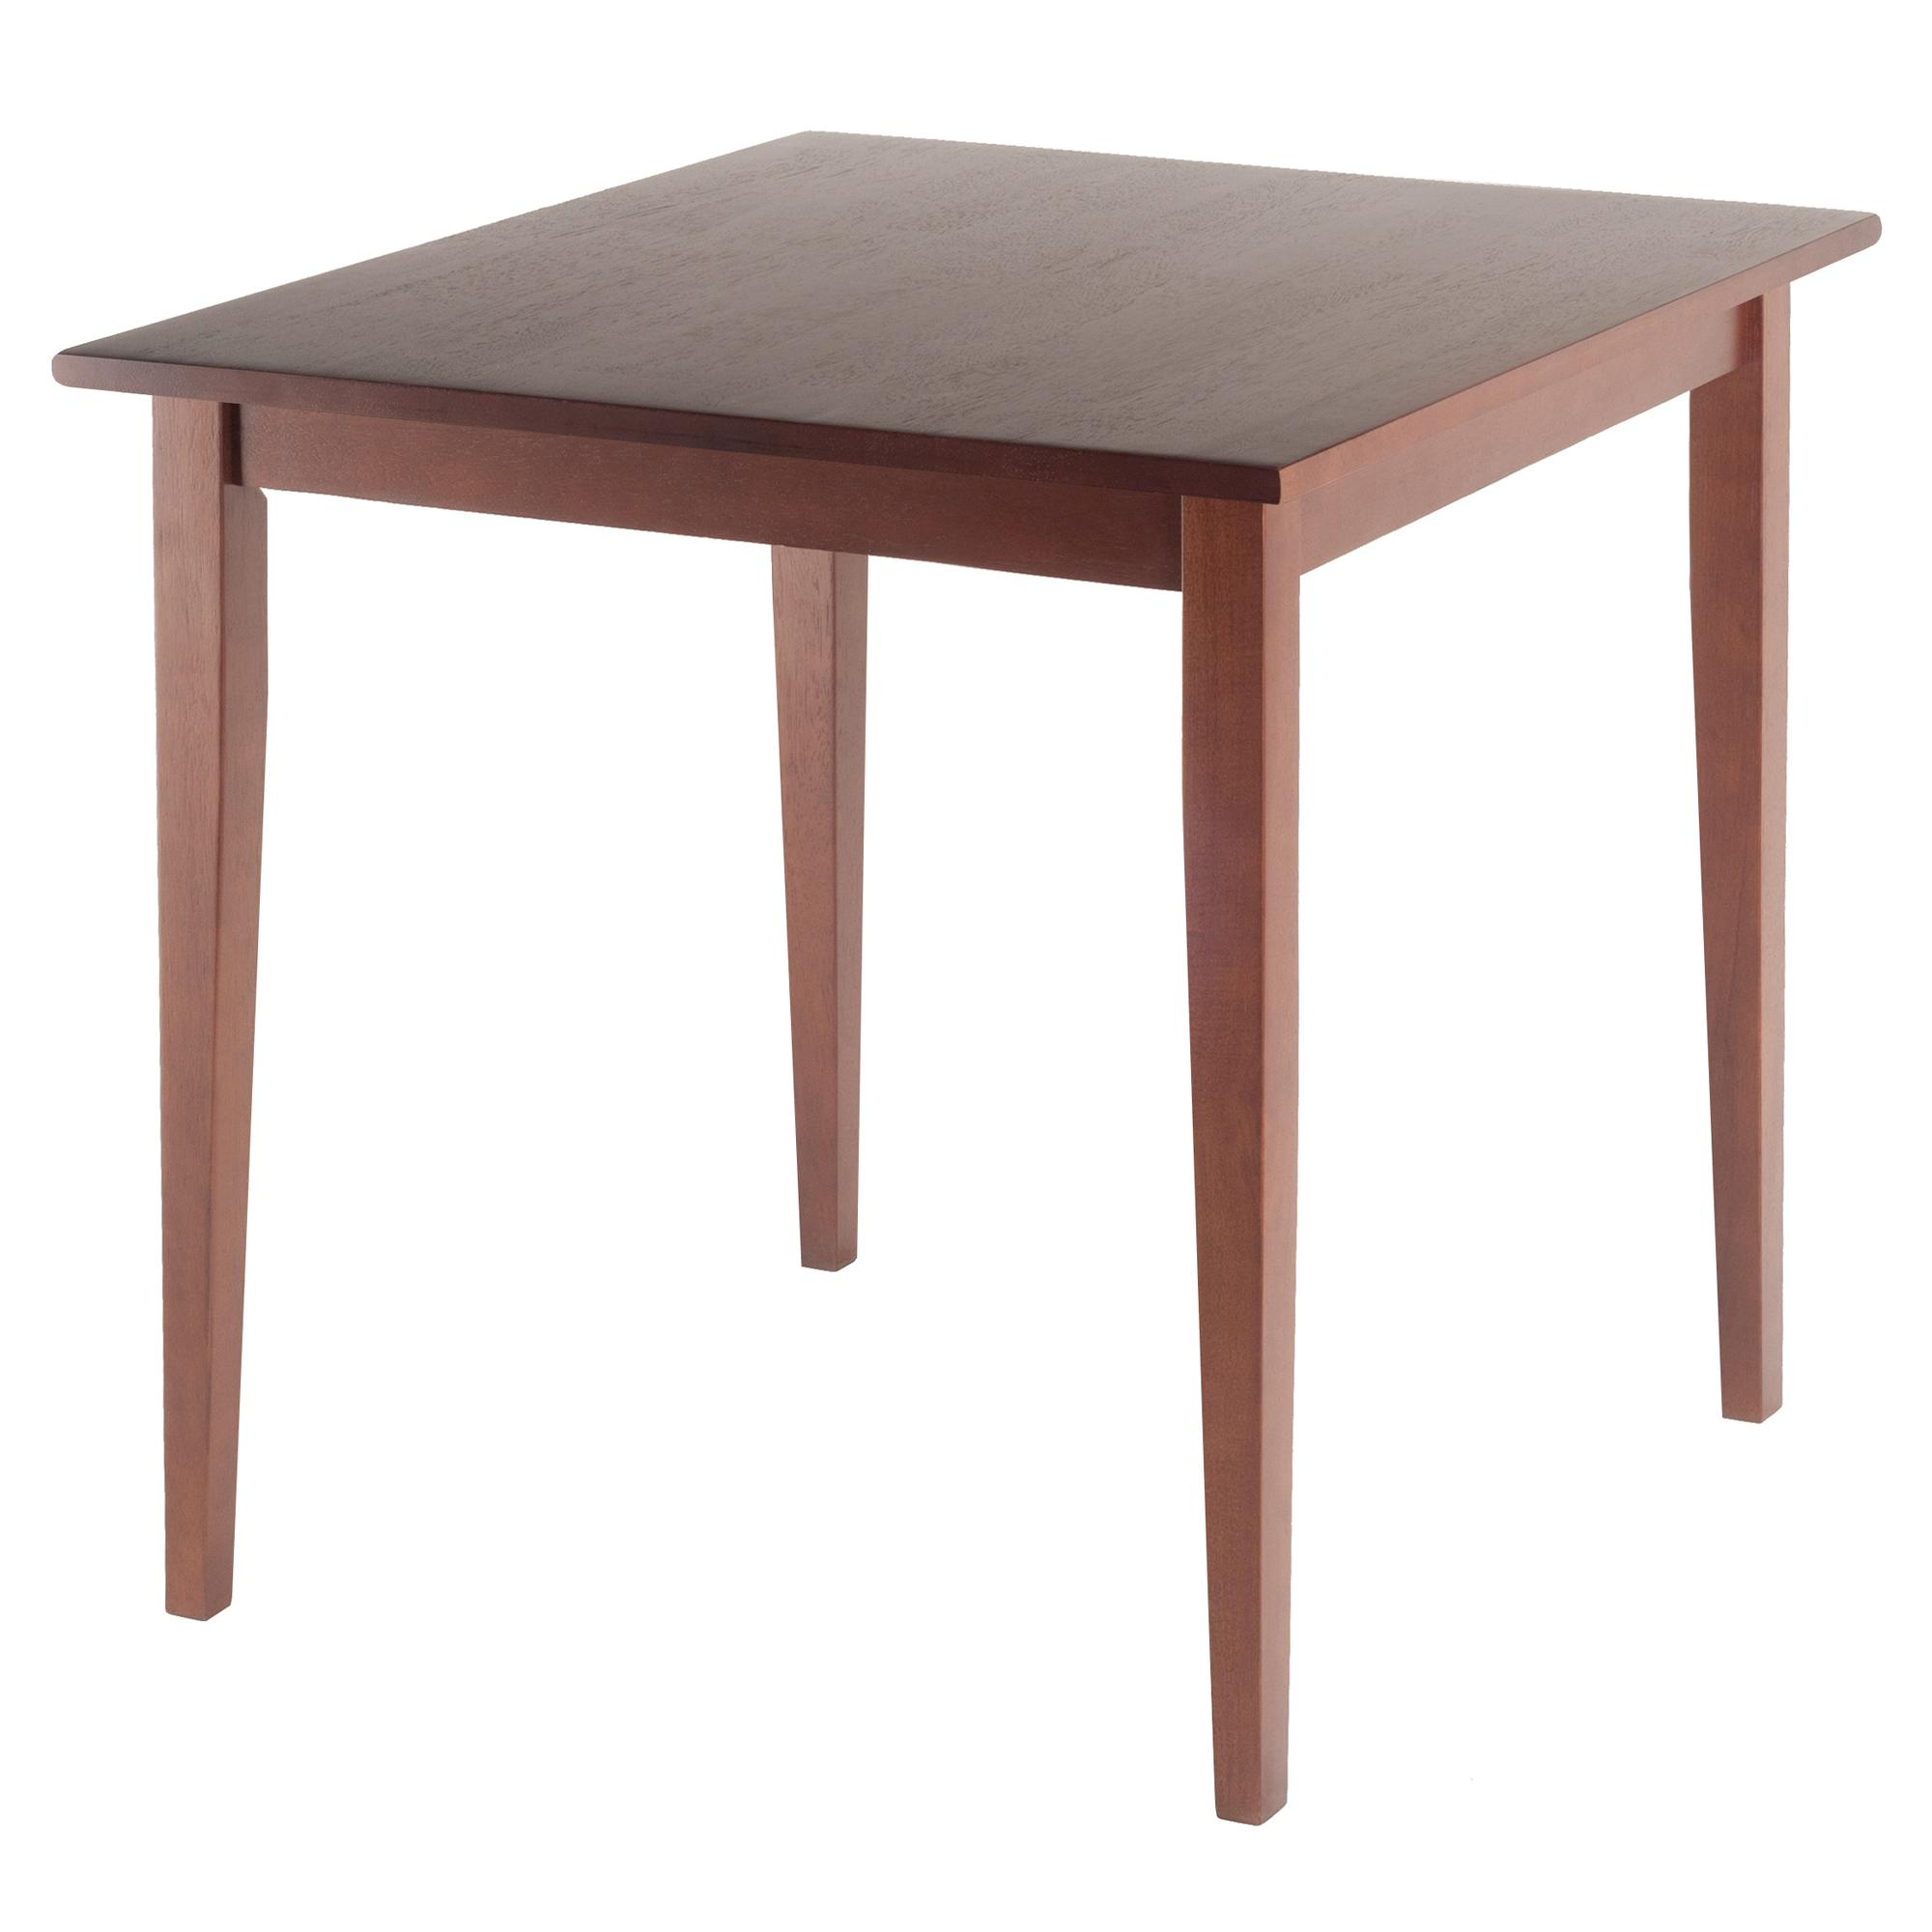 Winsome wood groveland square dining table in for Square dining table designs